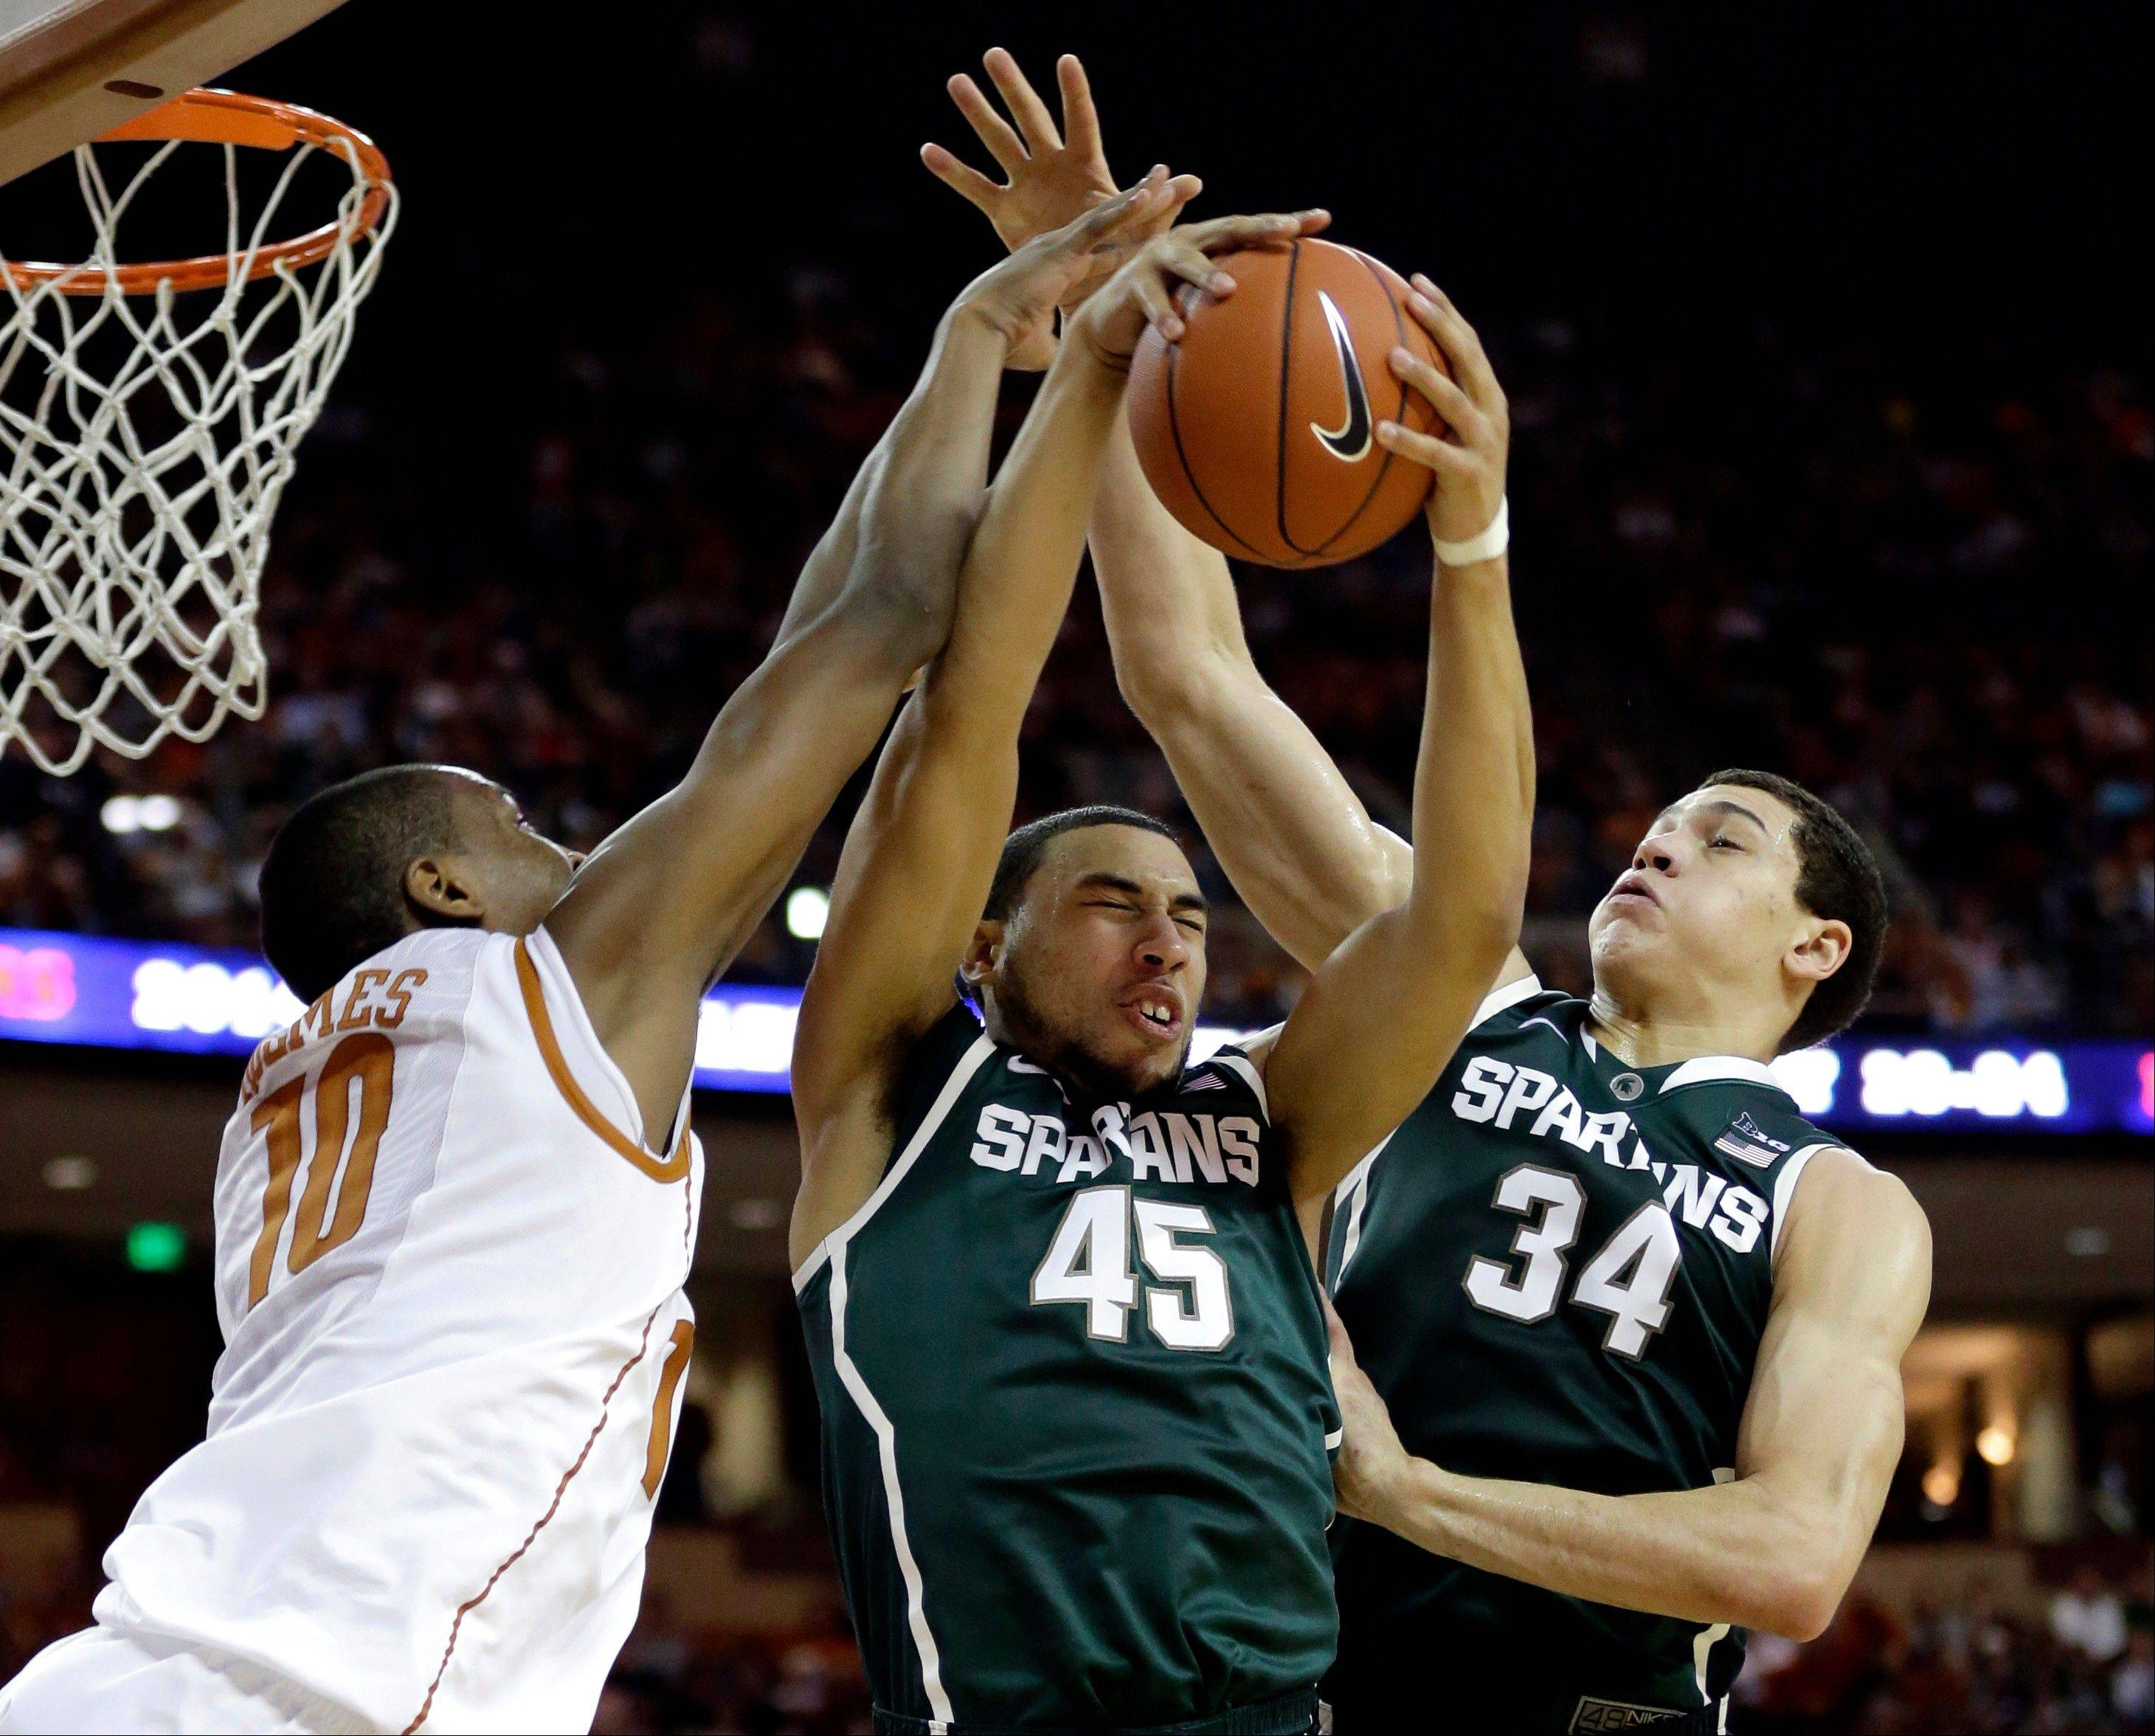 Michigan State�s Denzel Valentine (45) pulls in a rebound between teammate Gavin Schilling and Texas� Jonathan Holmes during the first half of Saturday�s game in Austin, Texas.